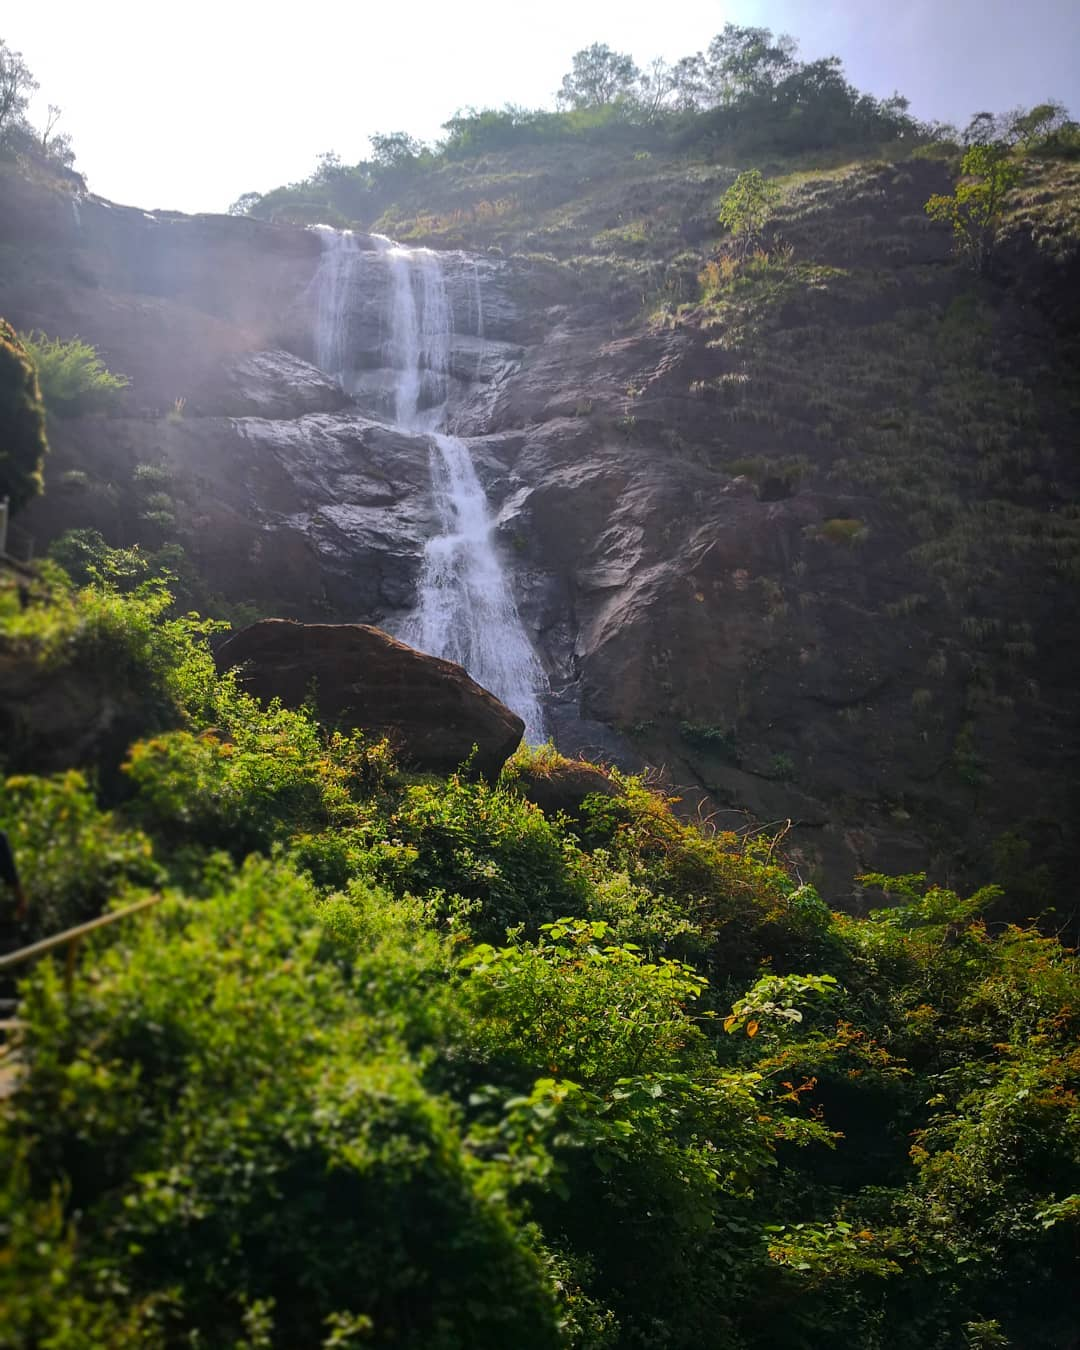 Meanamutty Falls